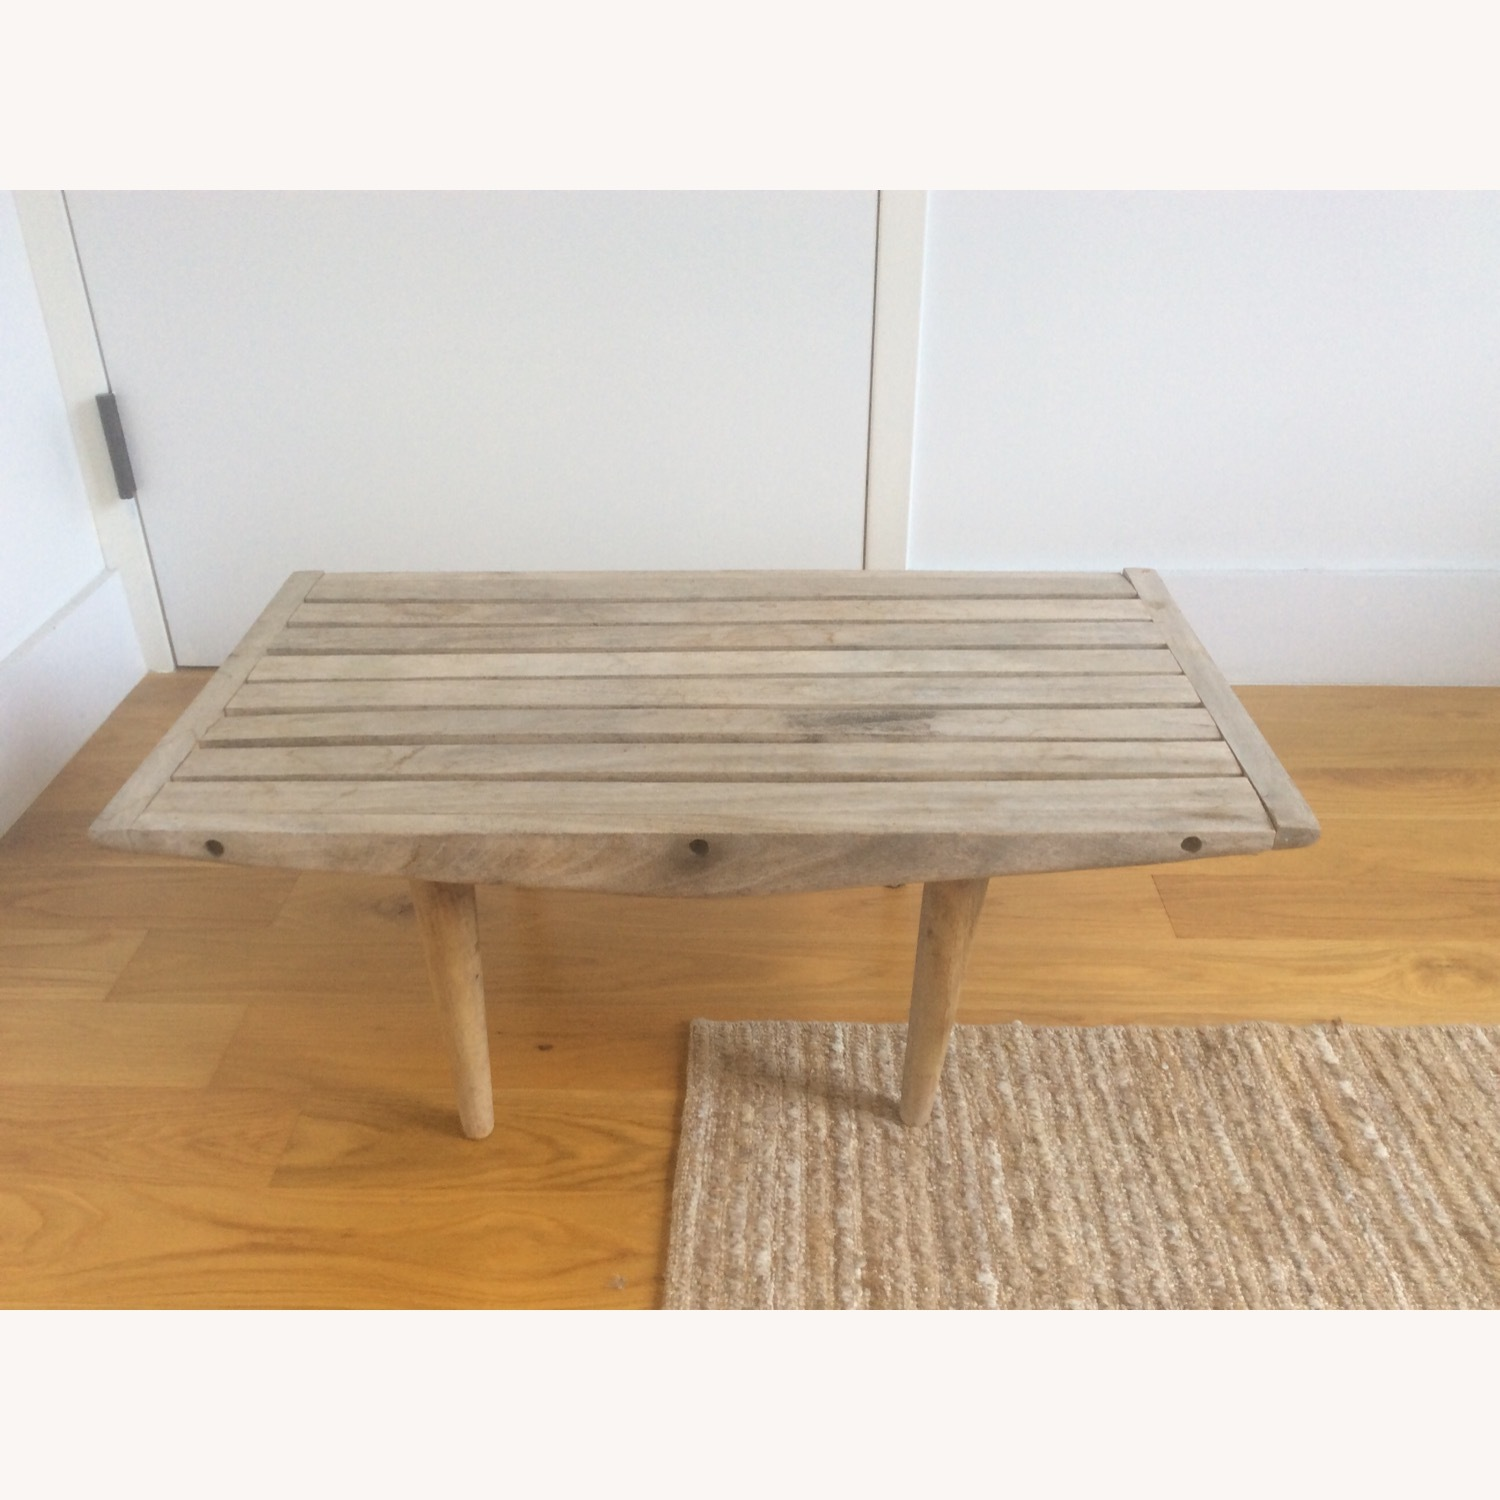 Vintage Wooden Coffee Table - image-1